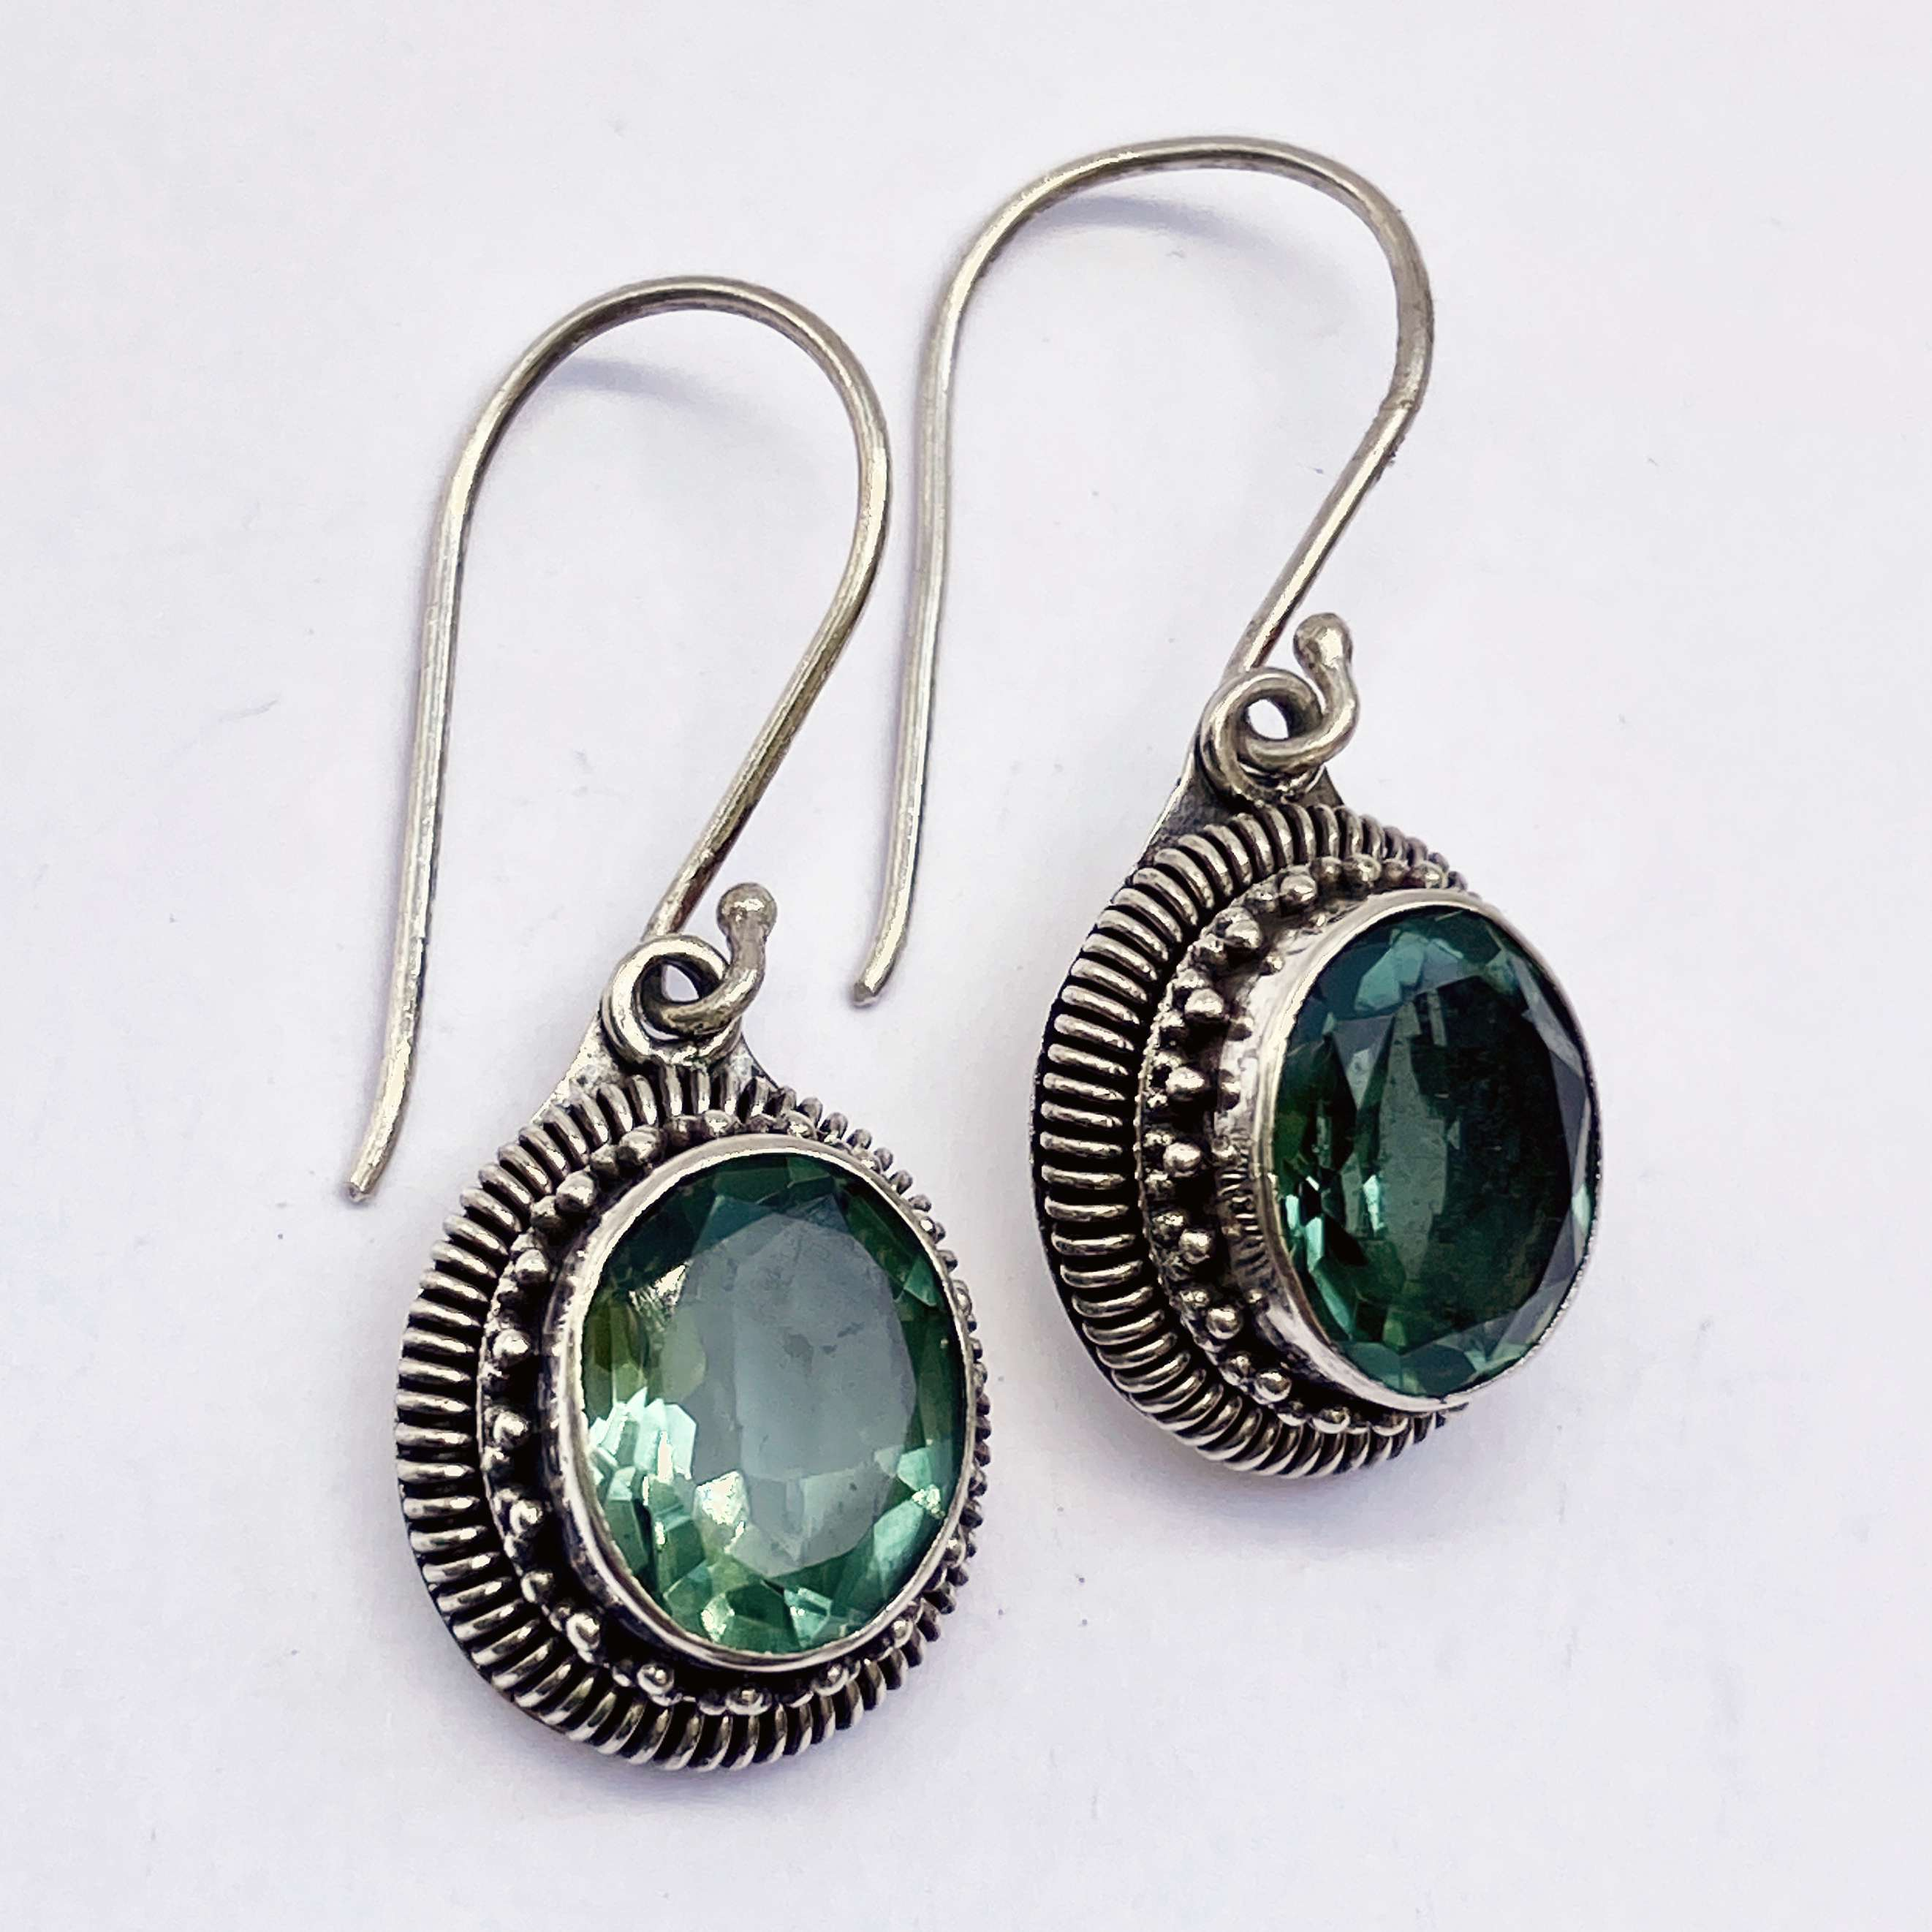 (HANDMADE 925 BALI STERLING SILVER EARRINGS WITH GREEN QUARTZ)